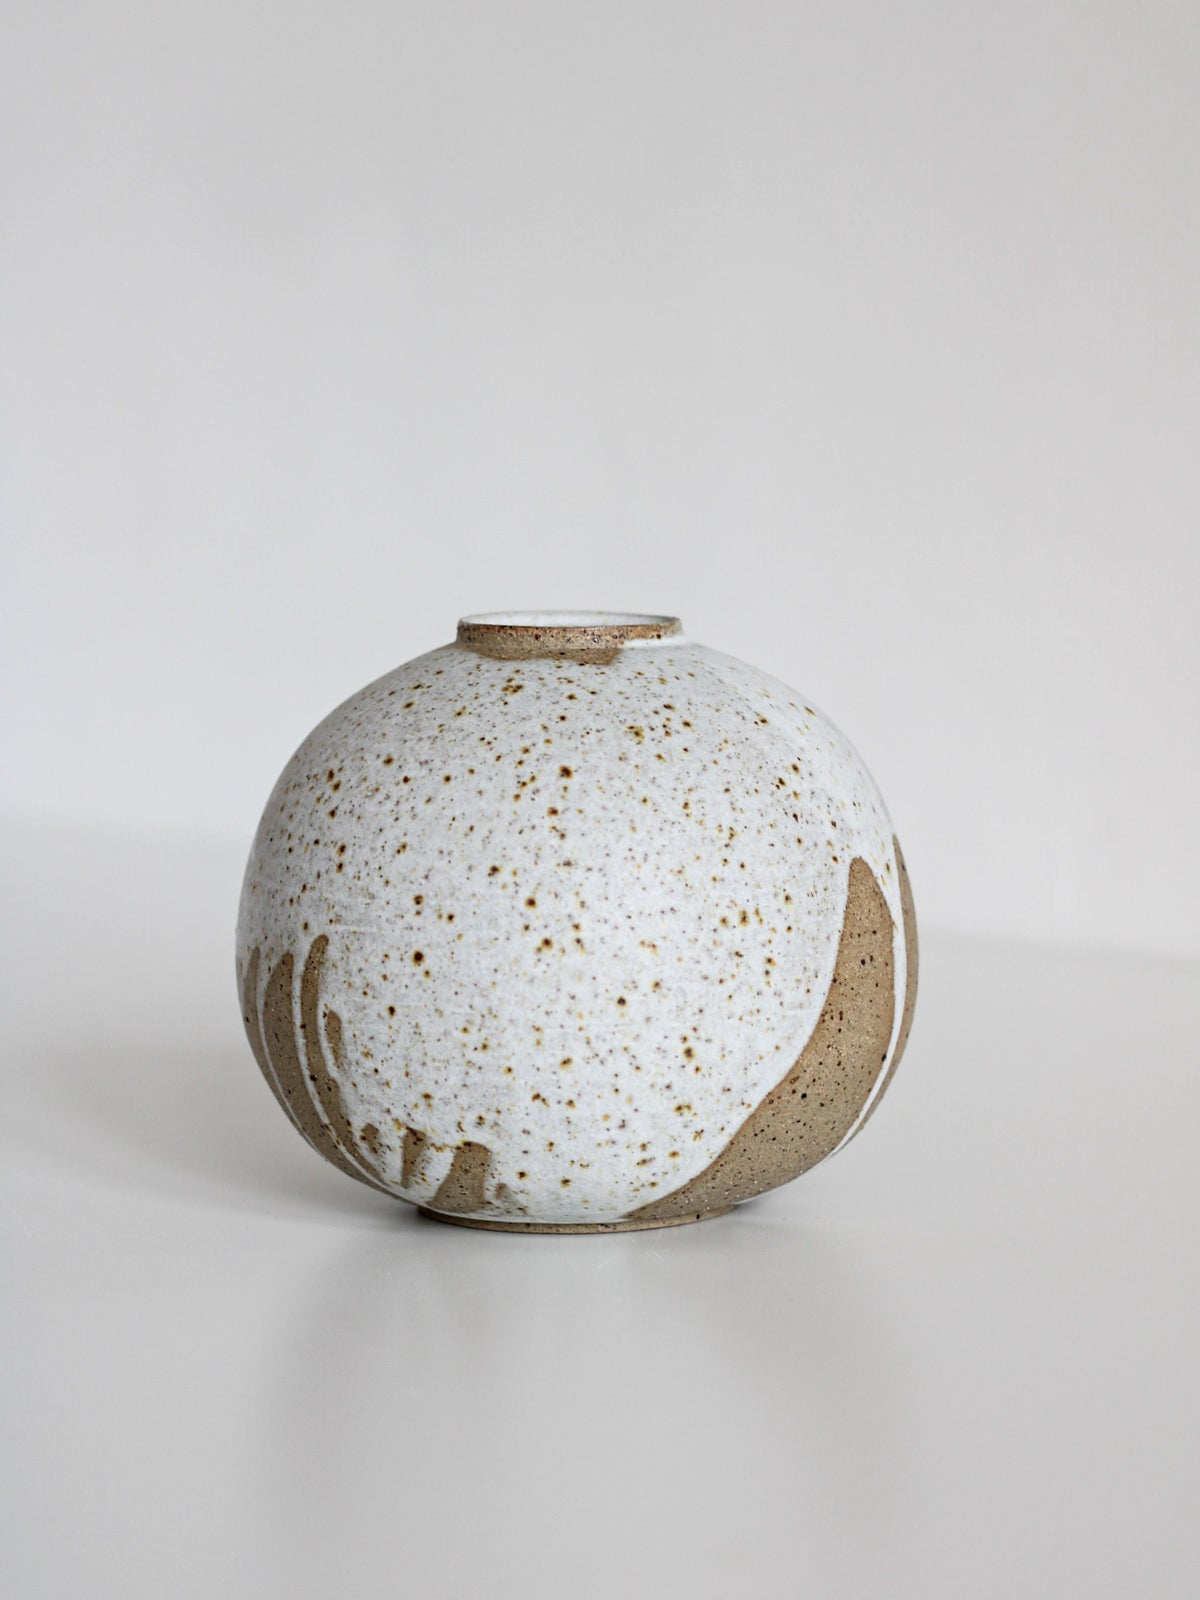 Image of moon jar